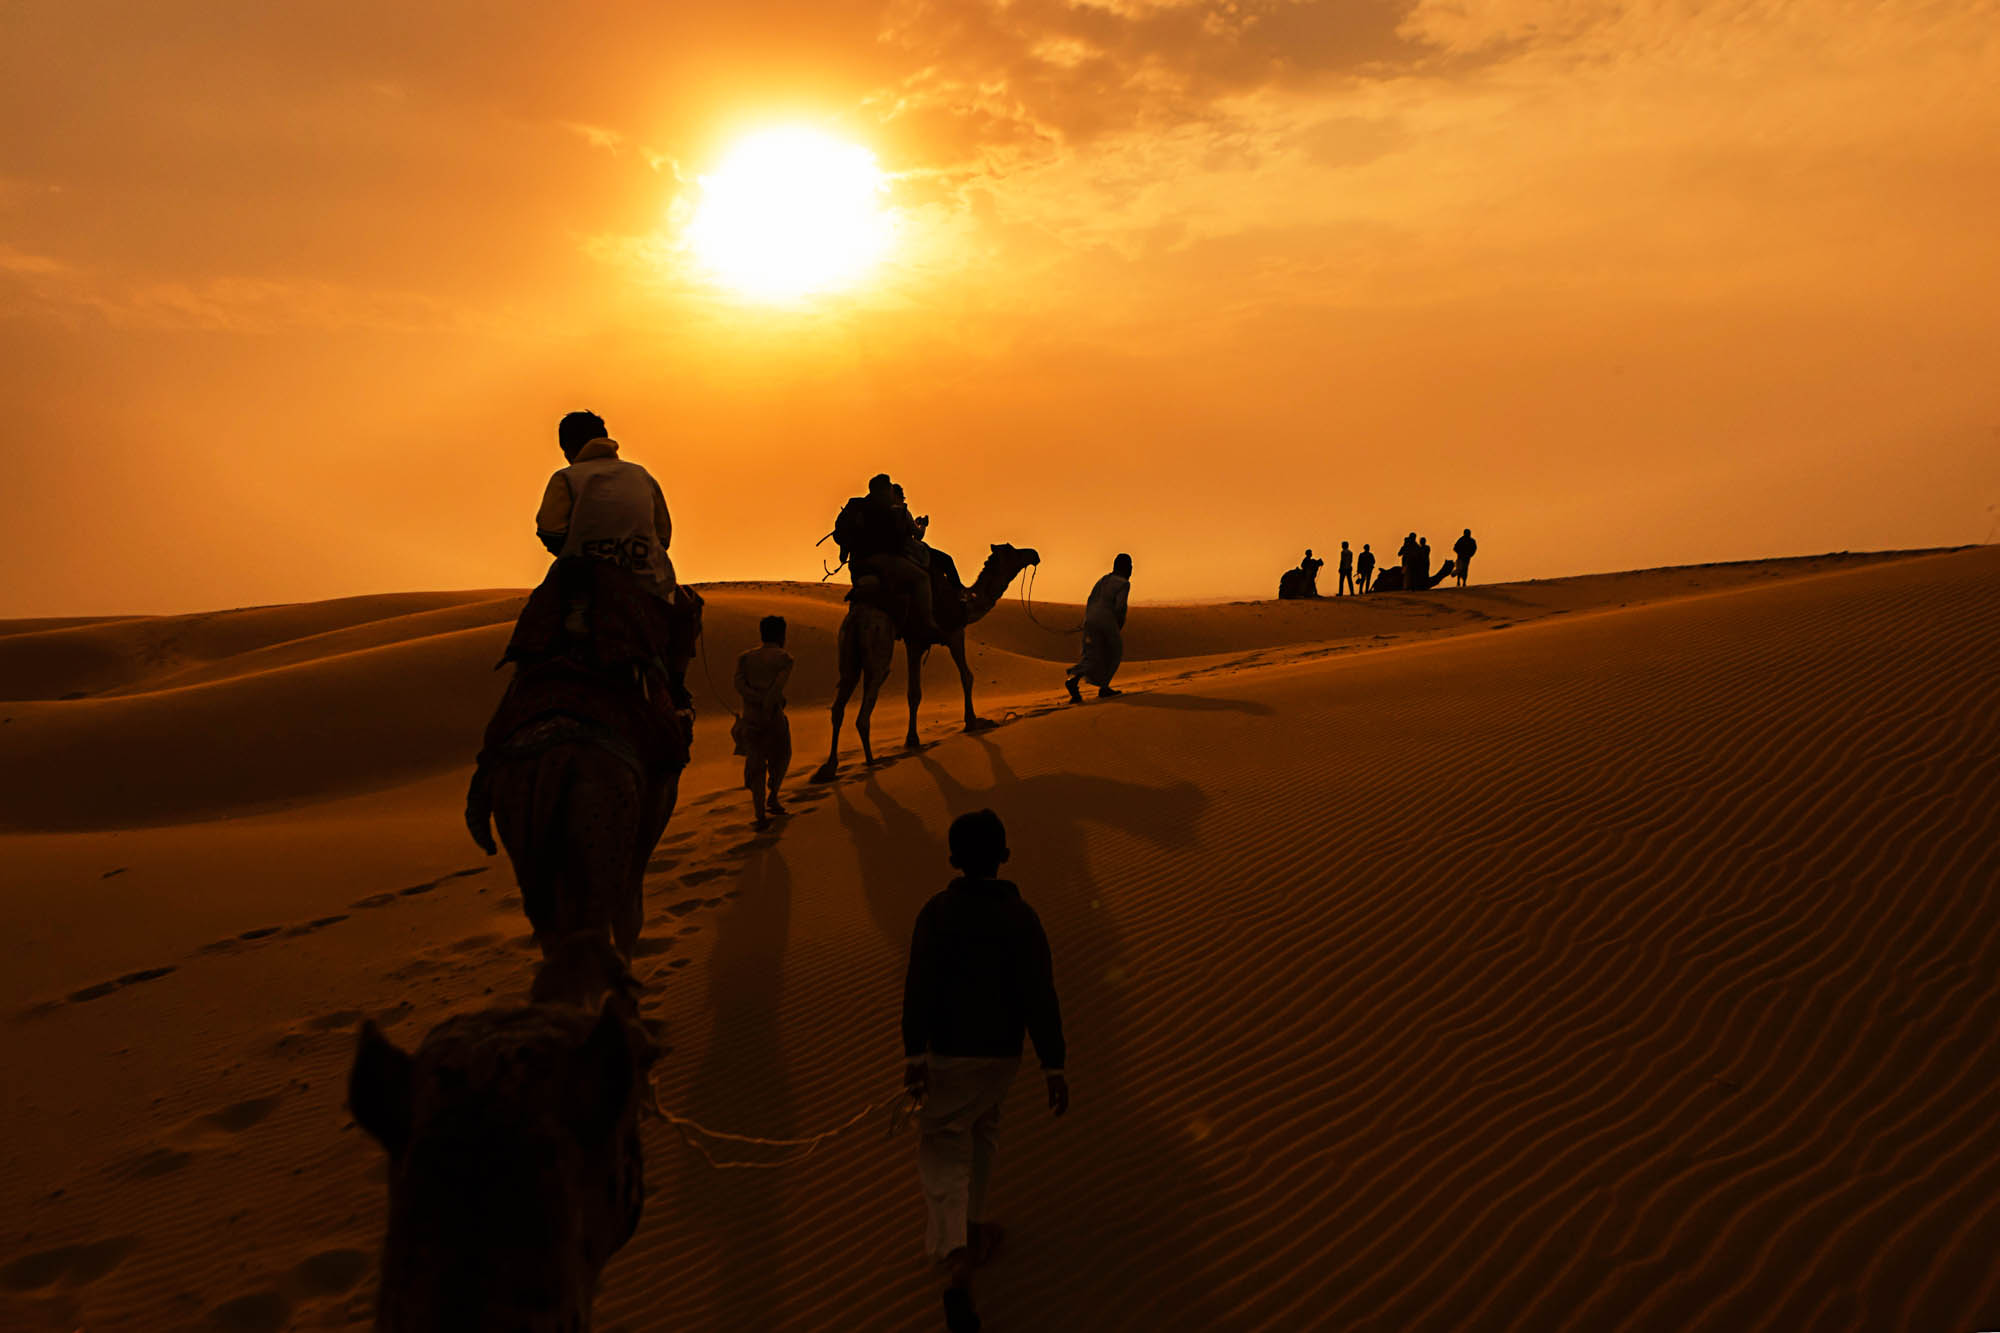 Camel rides in the Great Indian Desert, Jaisalmer, India.